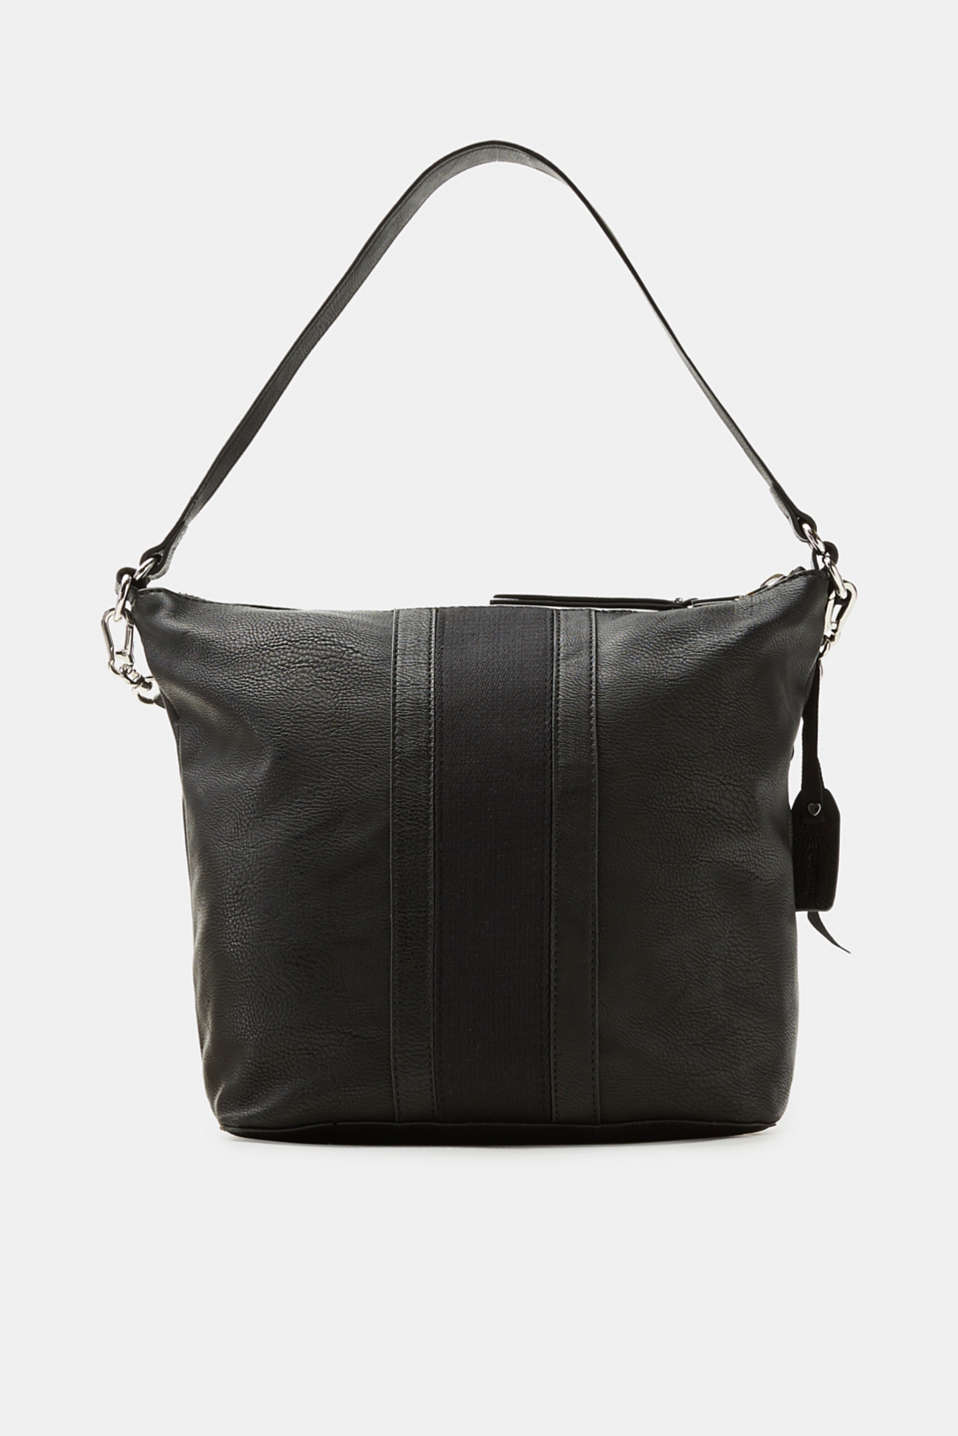 For your everyday essentials! The understated design and the practical size makes this shoulder bag an everyday favourite.